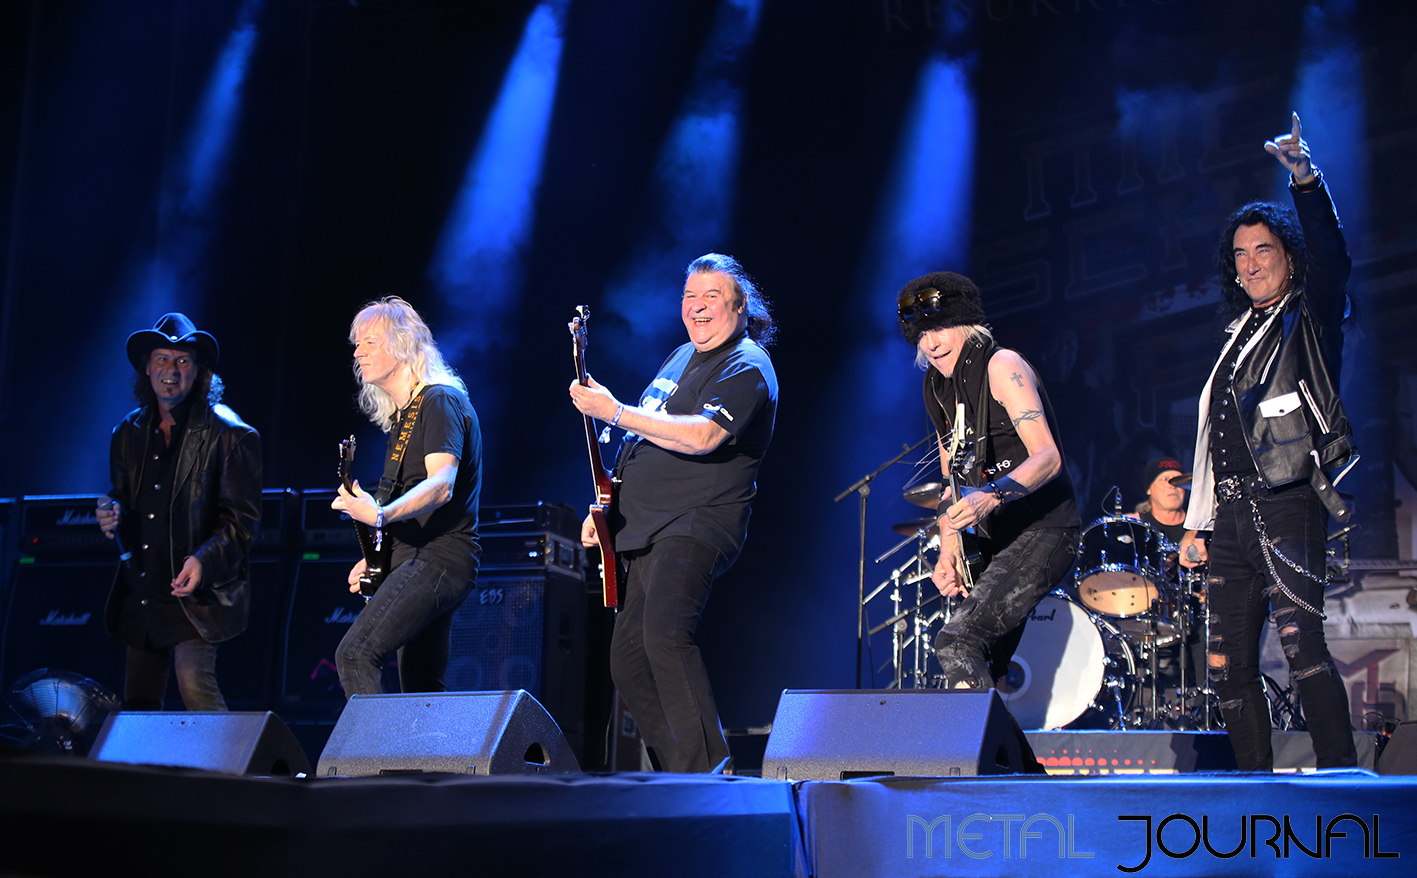 michael schenker fest - metal journal rock fest barcelona 2019 pic 2